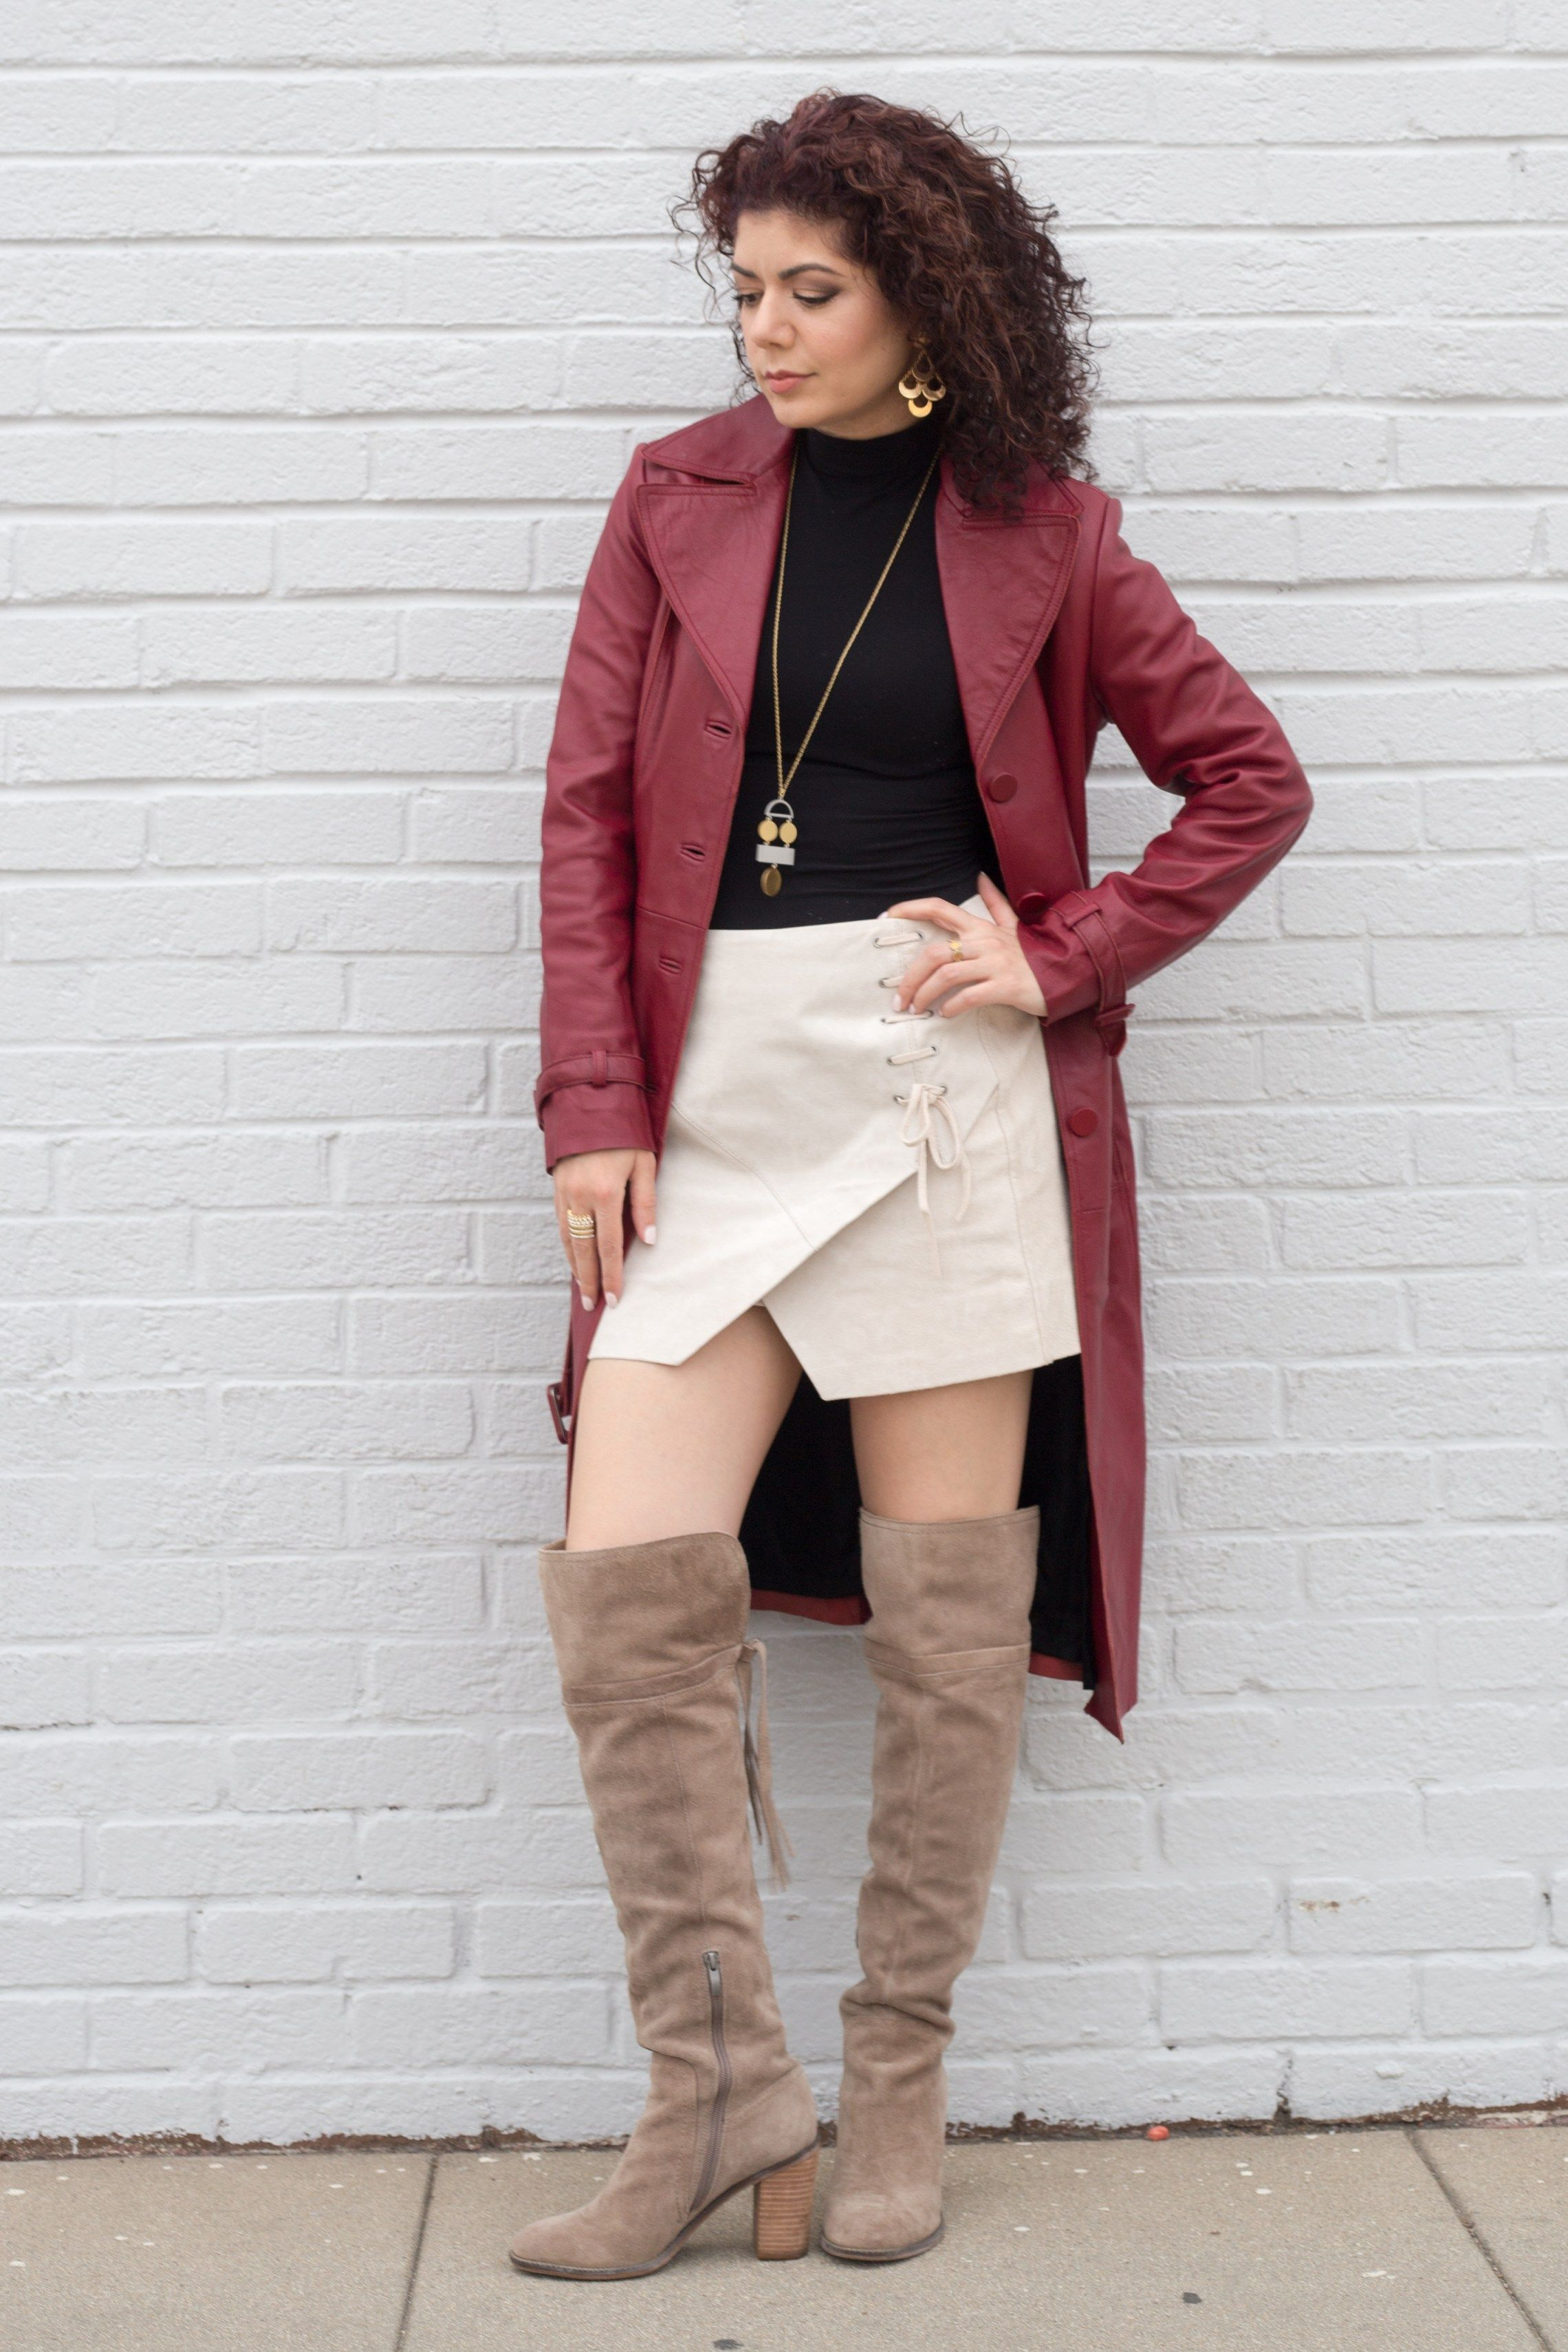 How to Wear a Trench Coat 4 Updated Ways to Style a